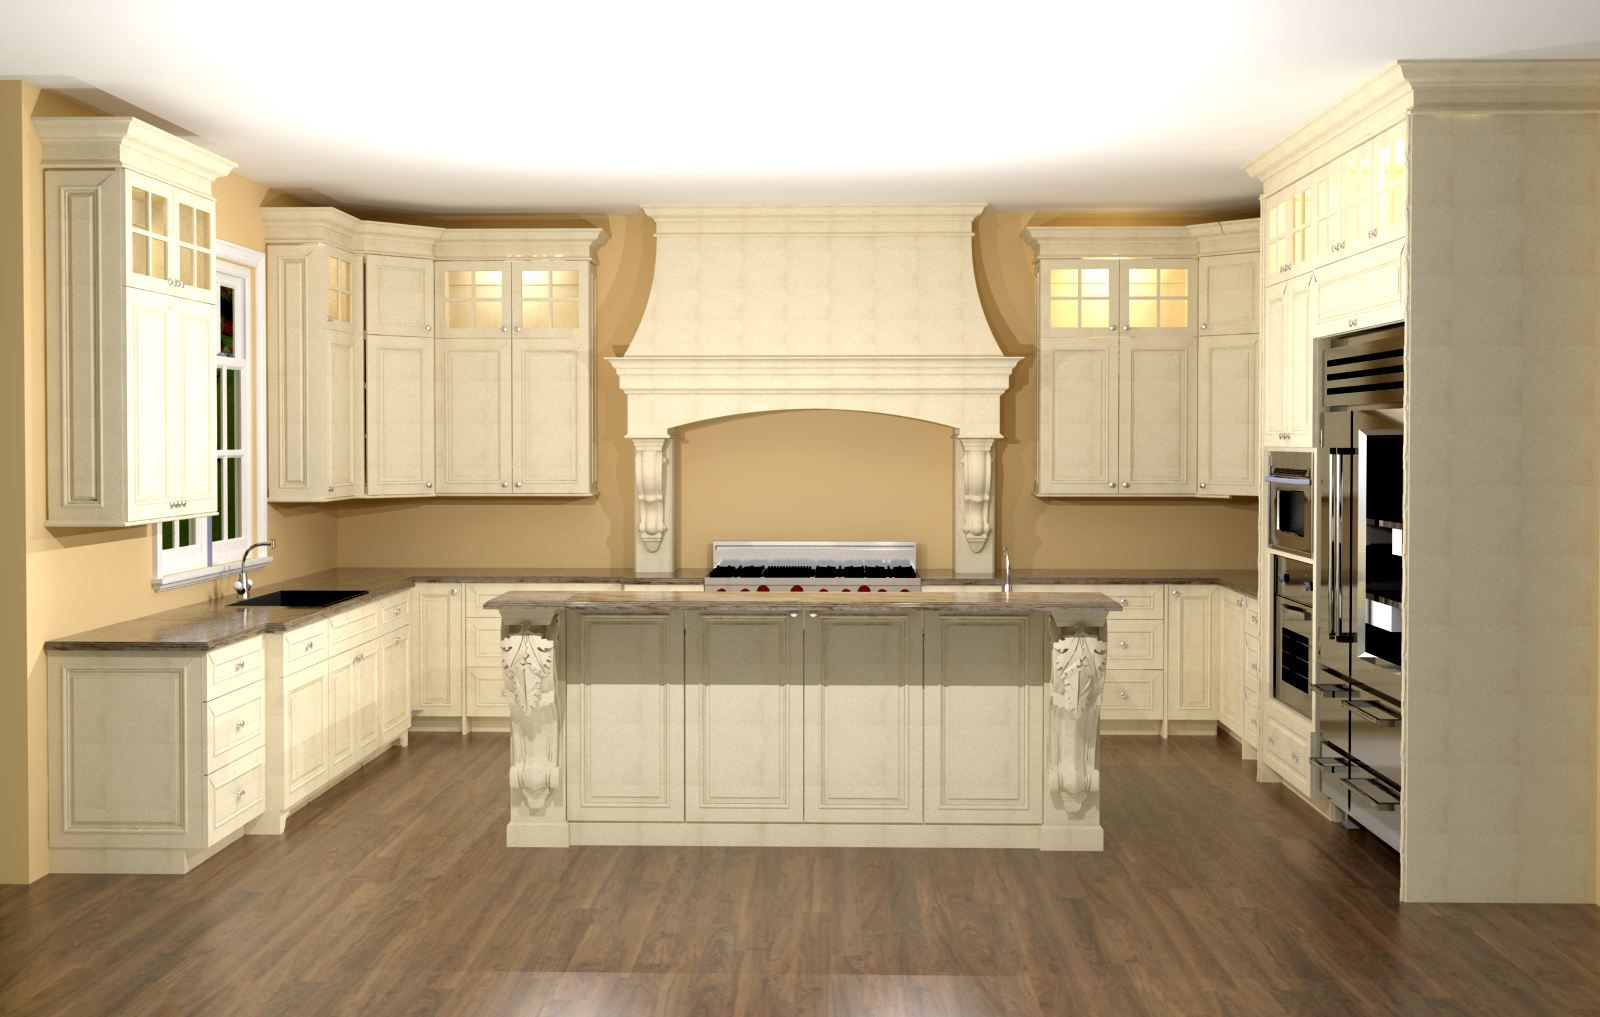 Large kitchen with custom hood features large enkeboll for Large kitchen designs photos